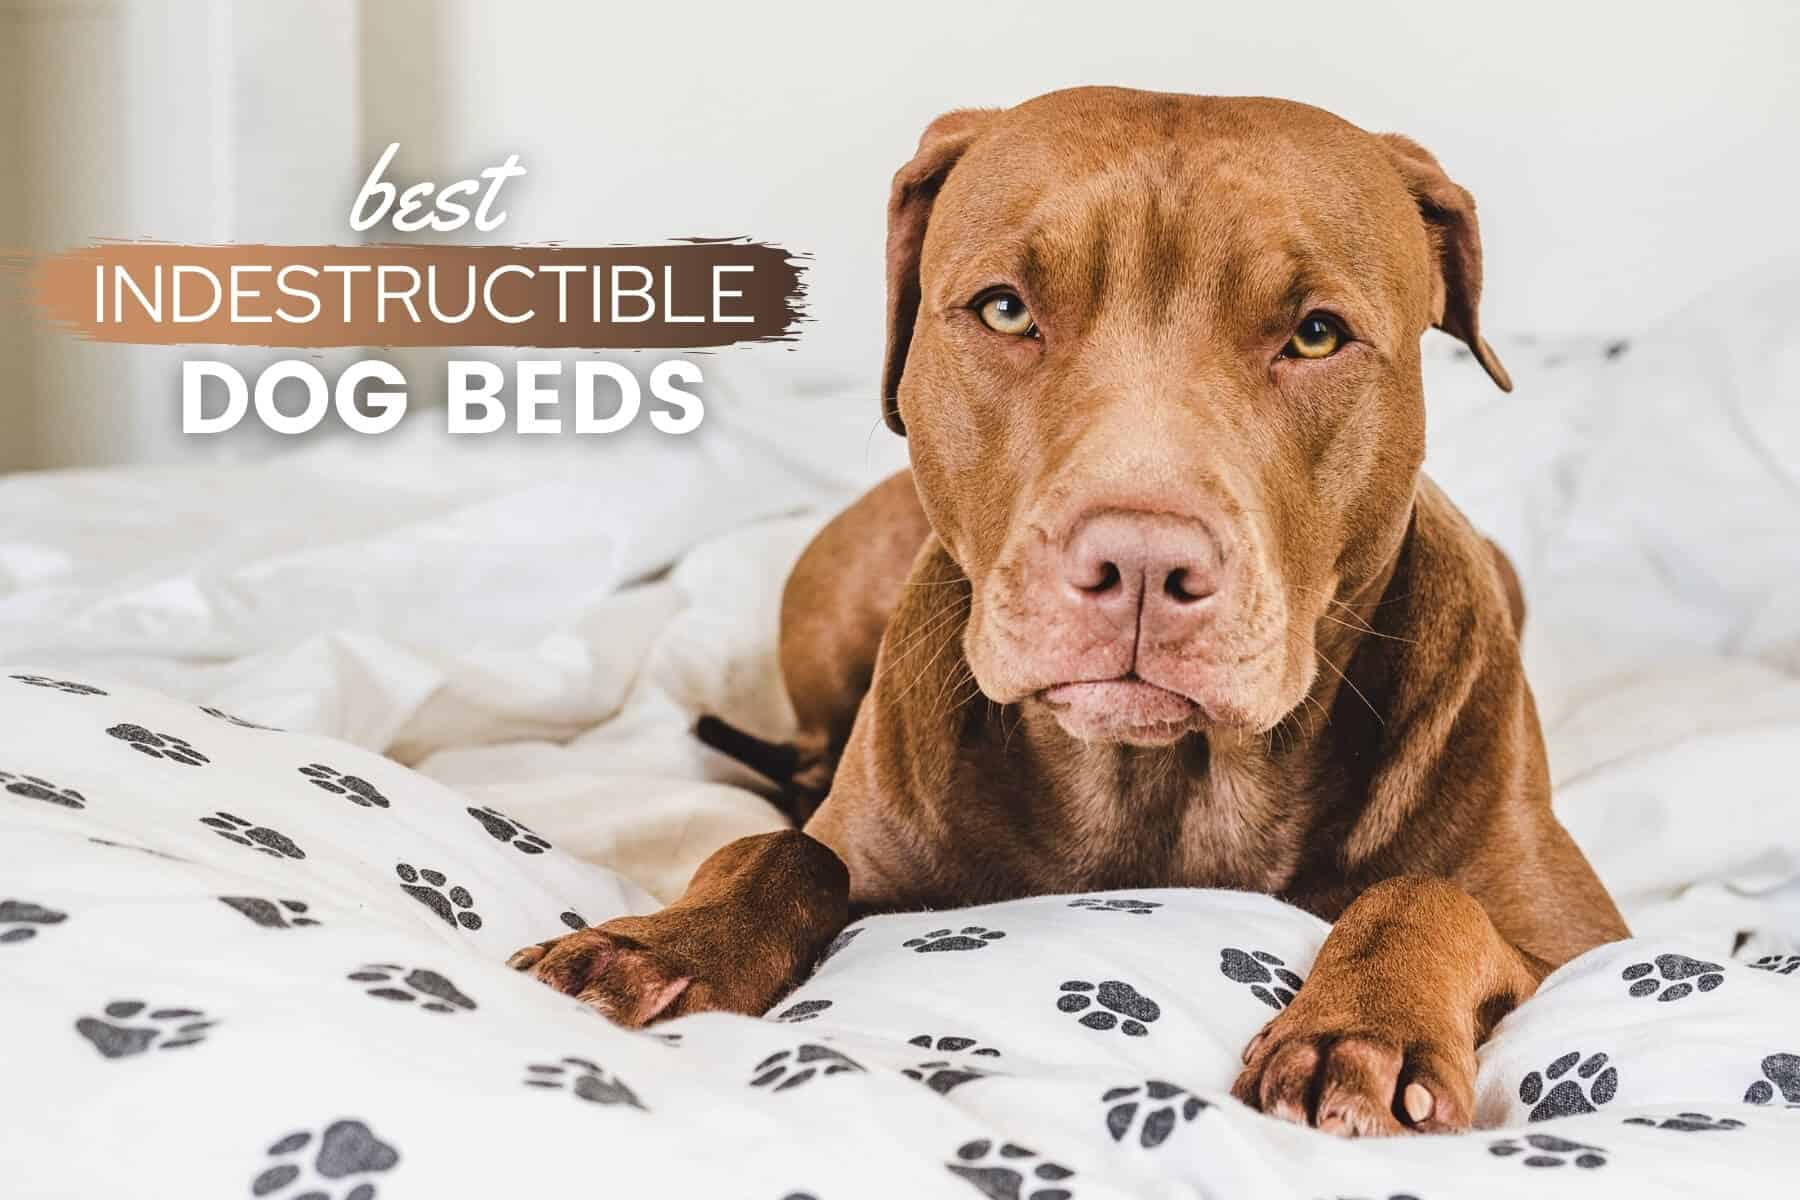 Best Indestructible Dog Beds Durable Chew Proof Tough Heavy Chewer Approved Canine Bible